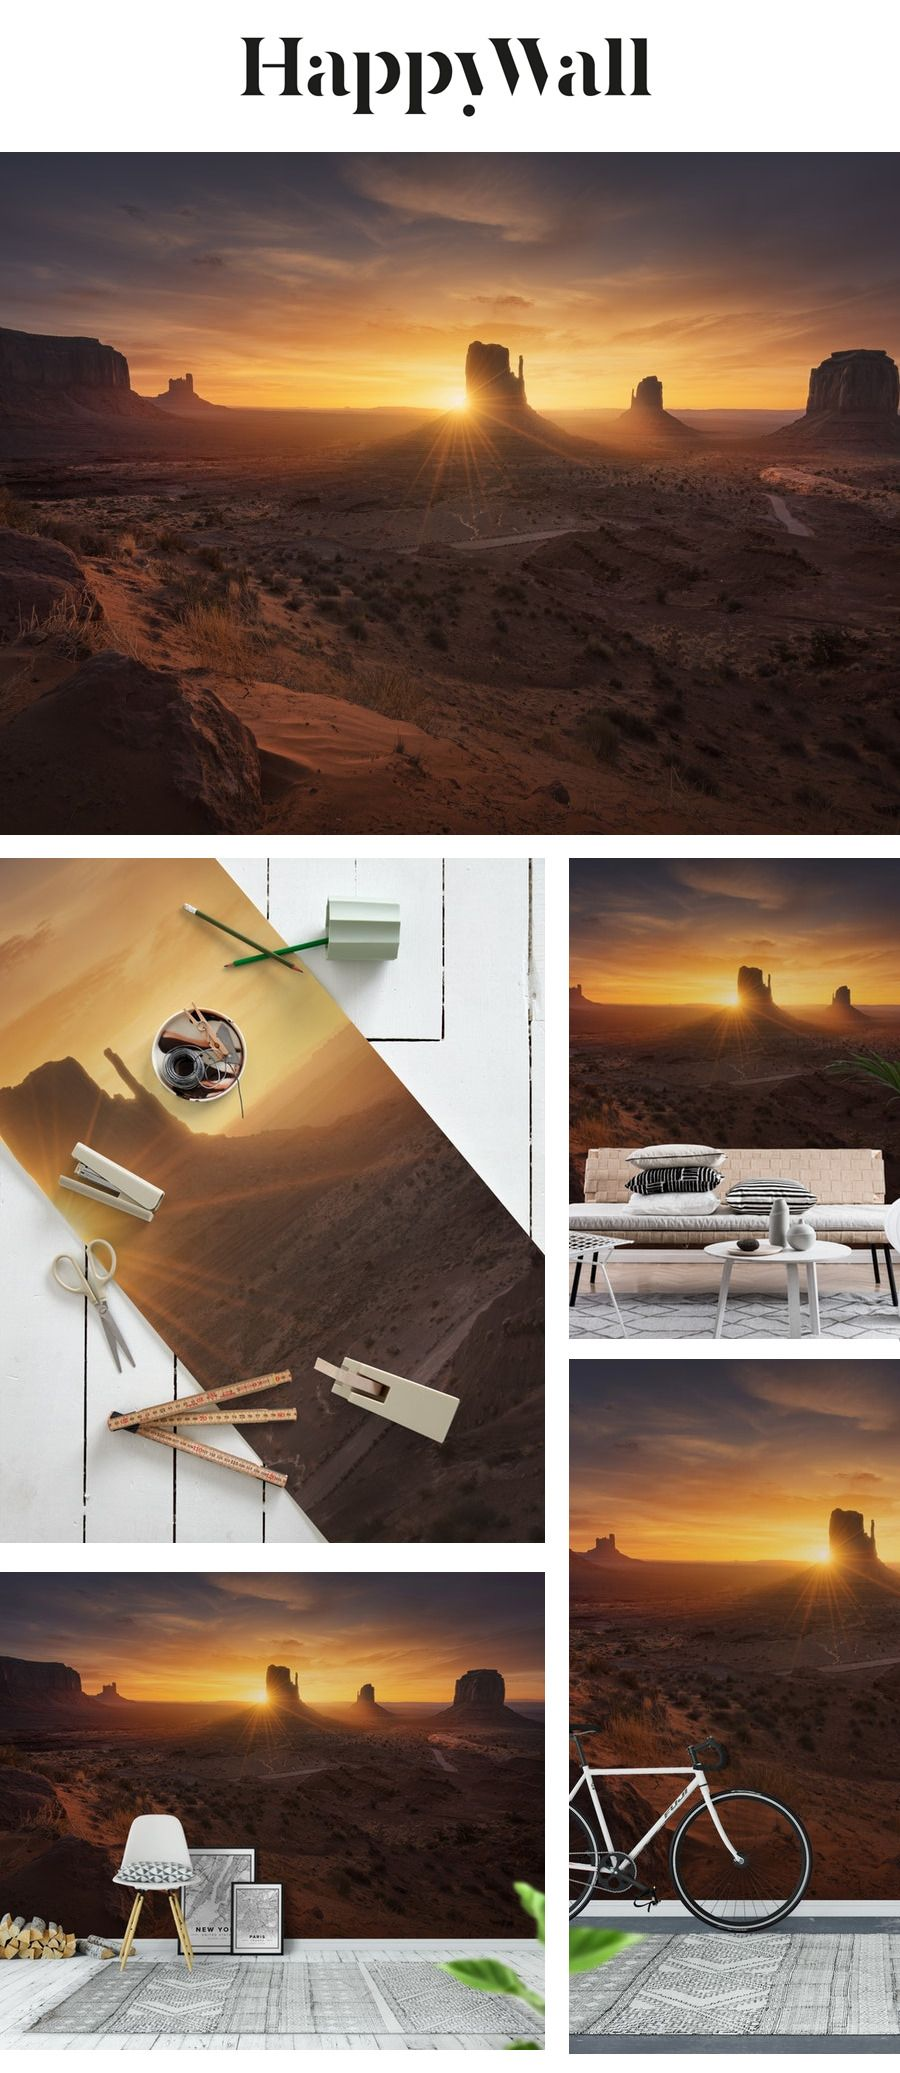 Monument Sunrise Wall mural in 2020 Sunrise wallpaper